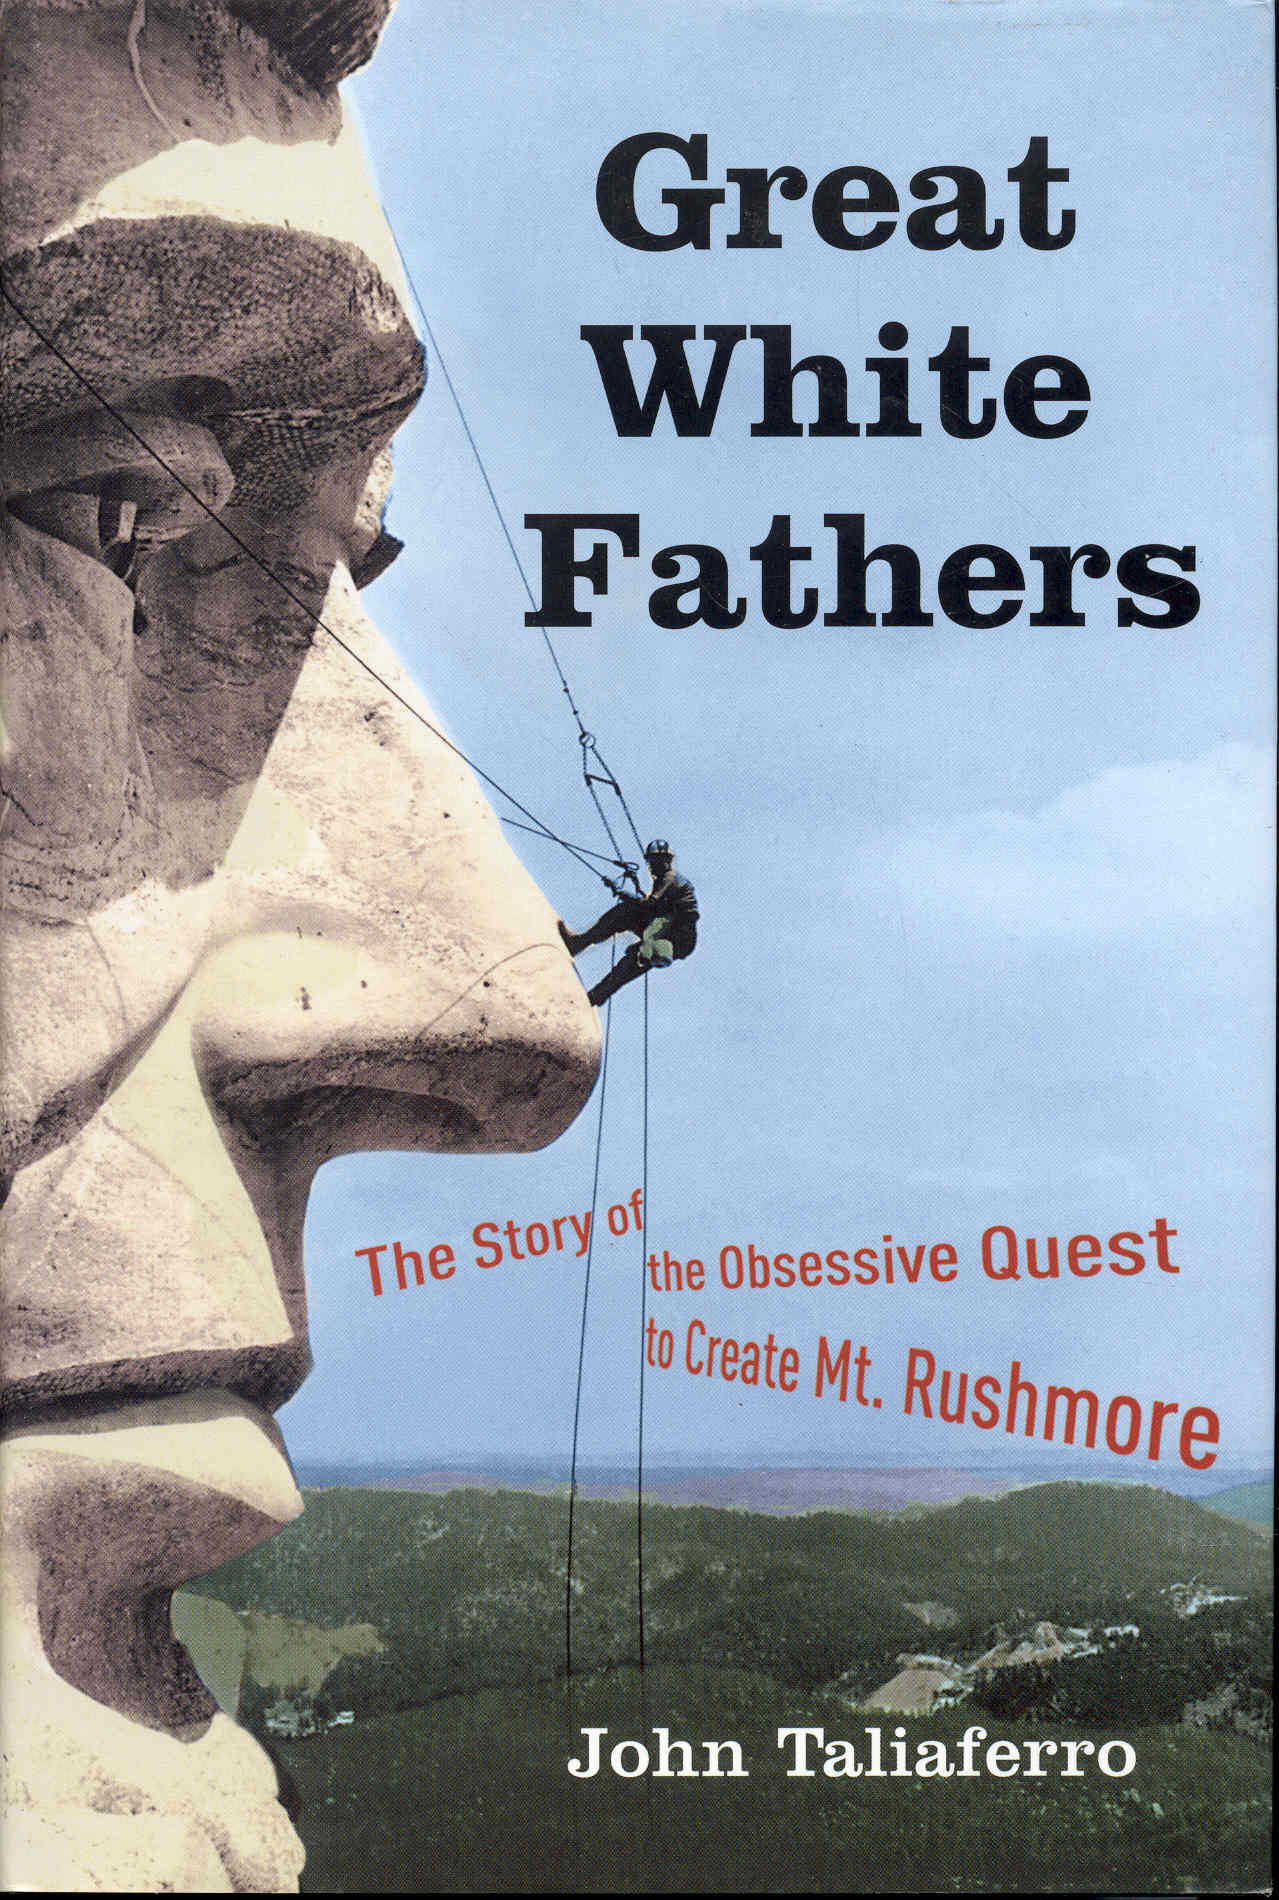 Image for Great White Fathers: The Story of the Obsessive Quest to Create Mount Rushmore